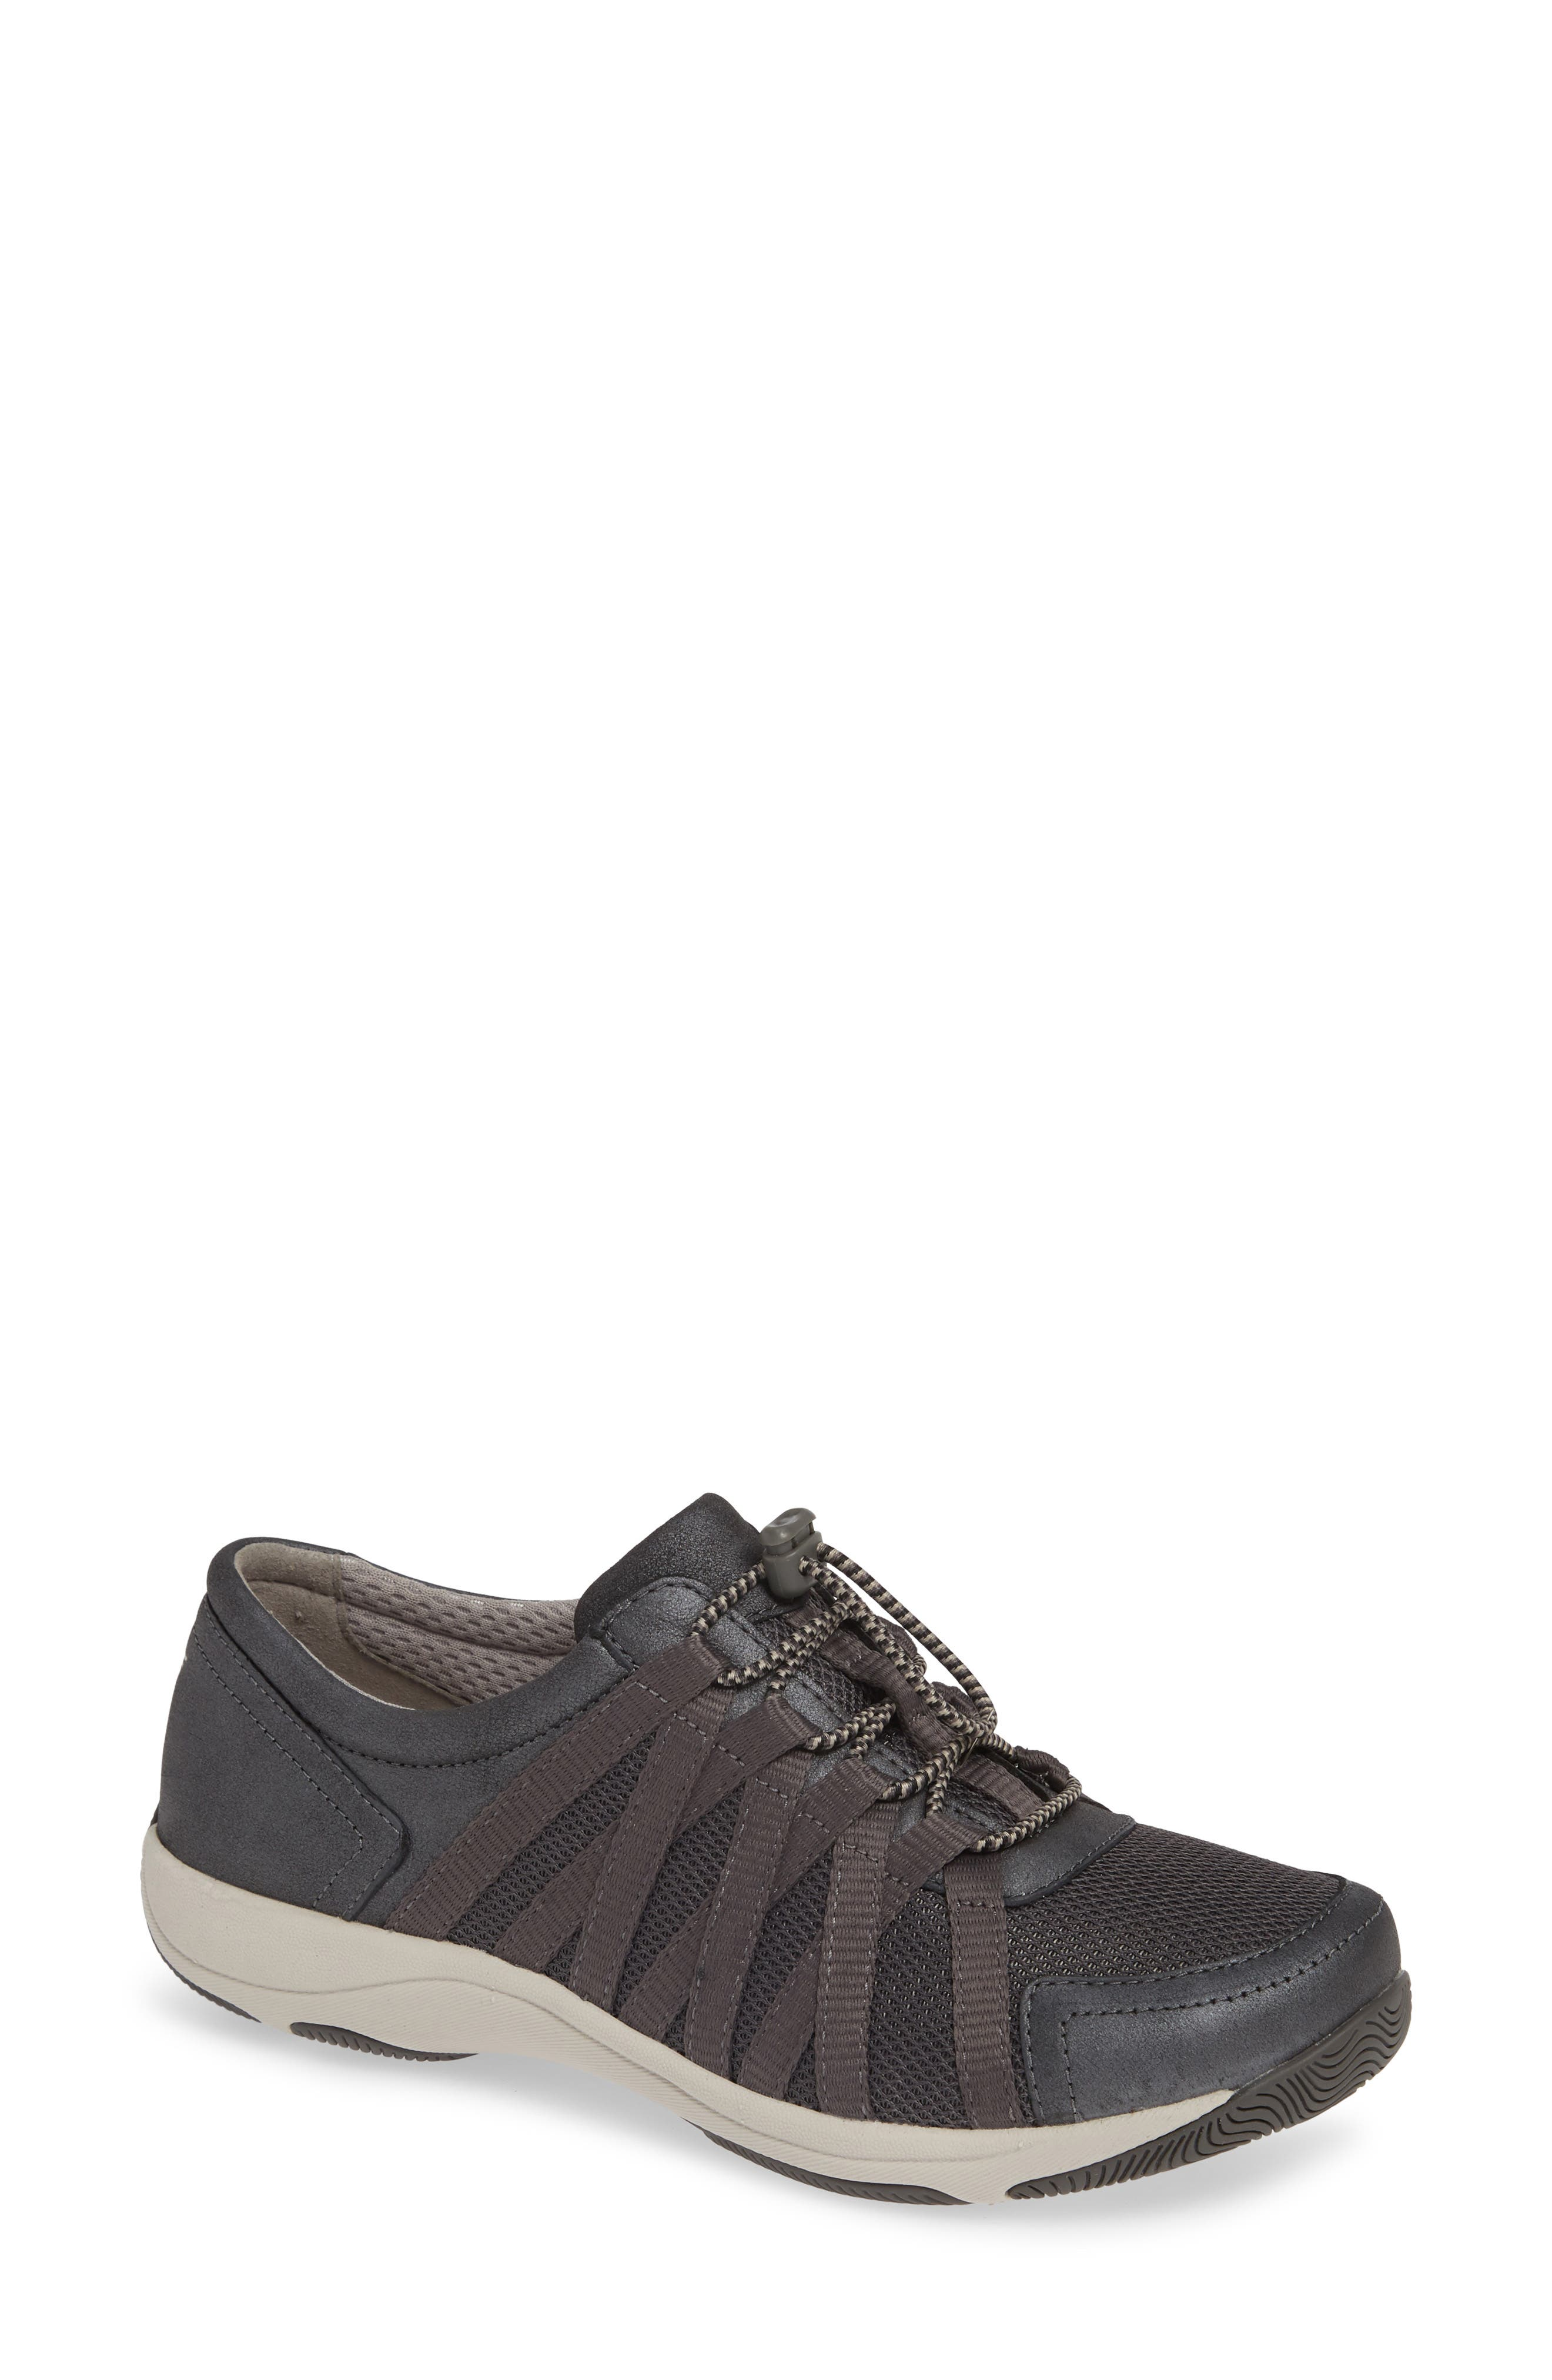 Halifax Collection Honor Sneaker,                             Main thumbnail 1, color,                             034